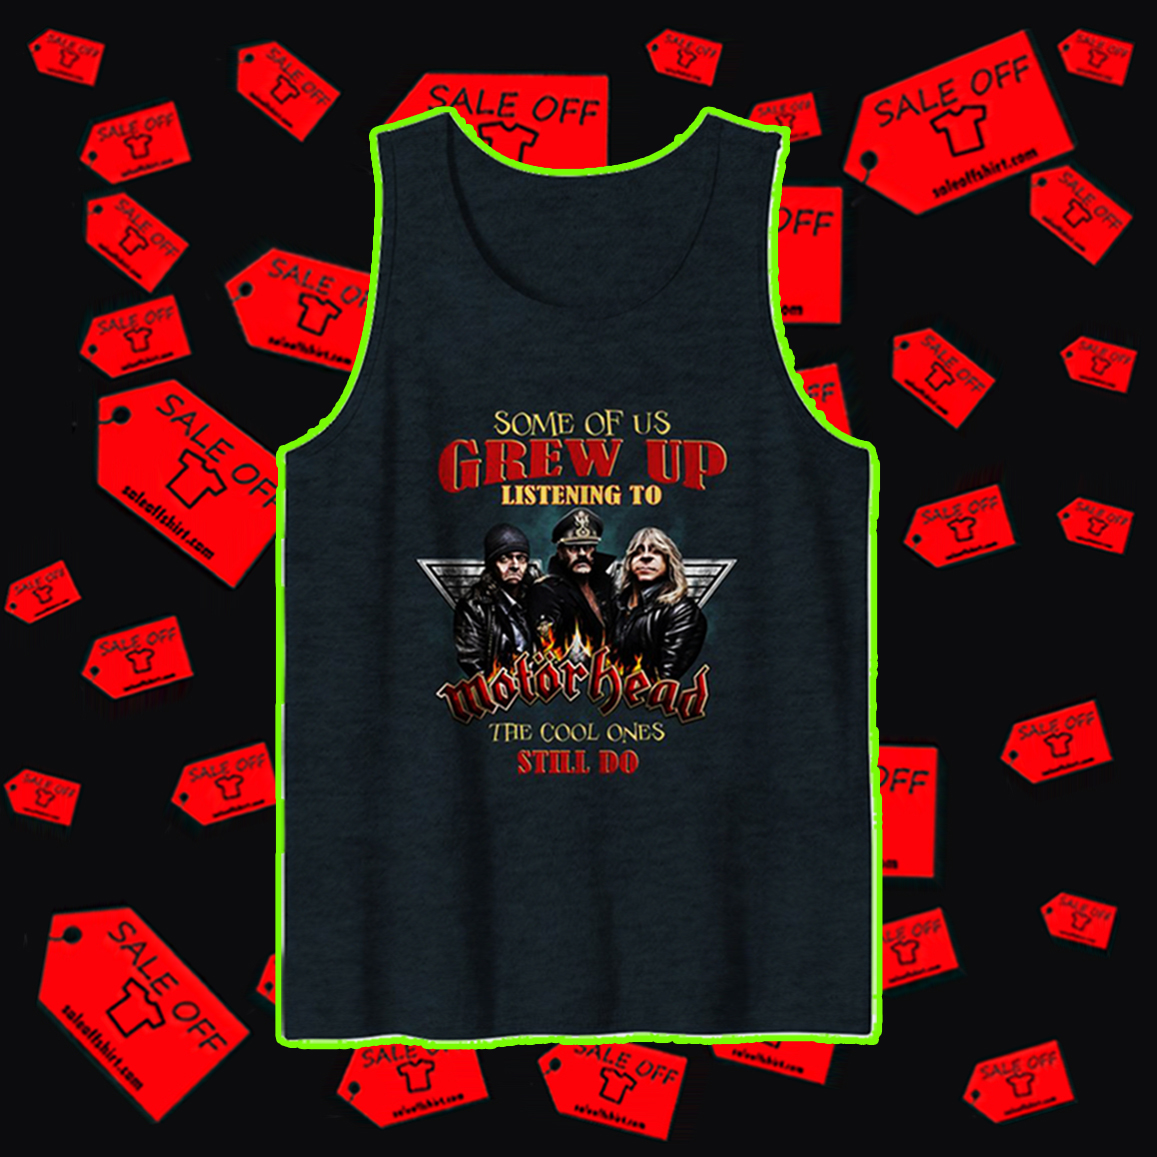 Some of us grew up listening to Motorhead the cool ones still do tank top